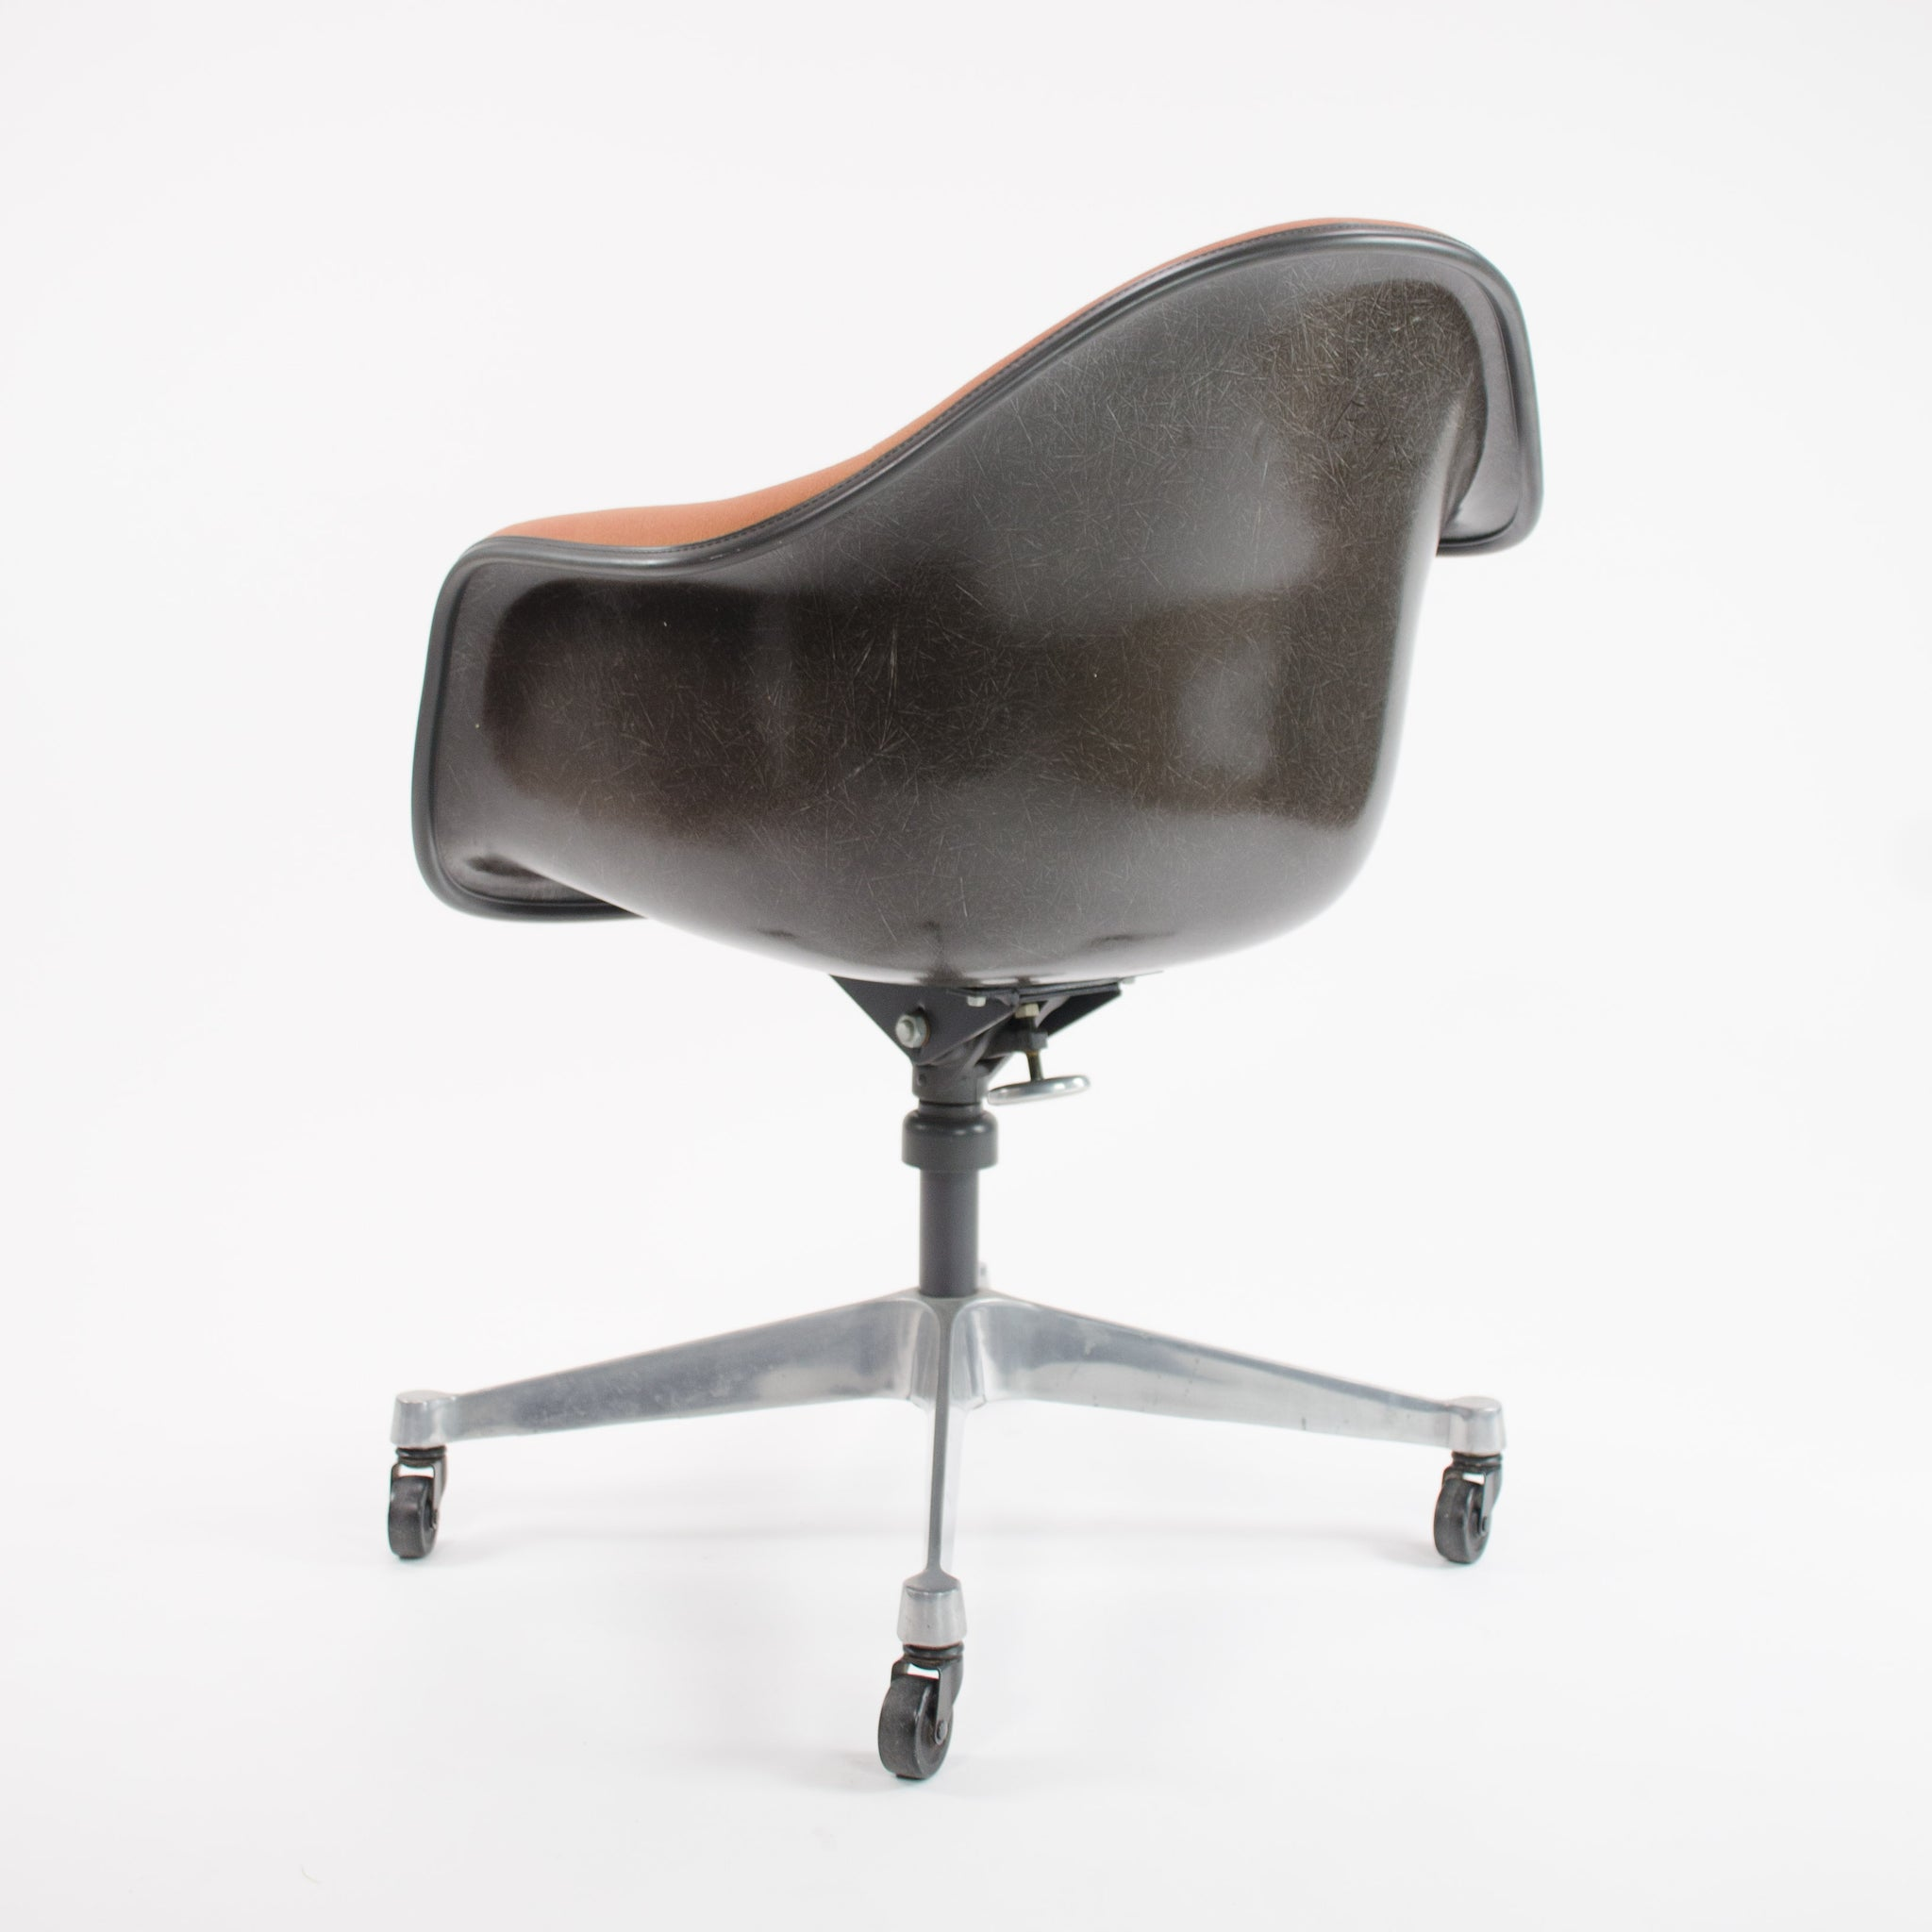 SOLD Herman Miller 1981 Eames Red / Black DAT-1 Fiberglass Rolling Desk Chair MINT